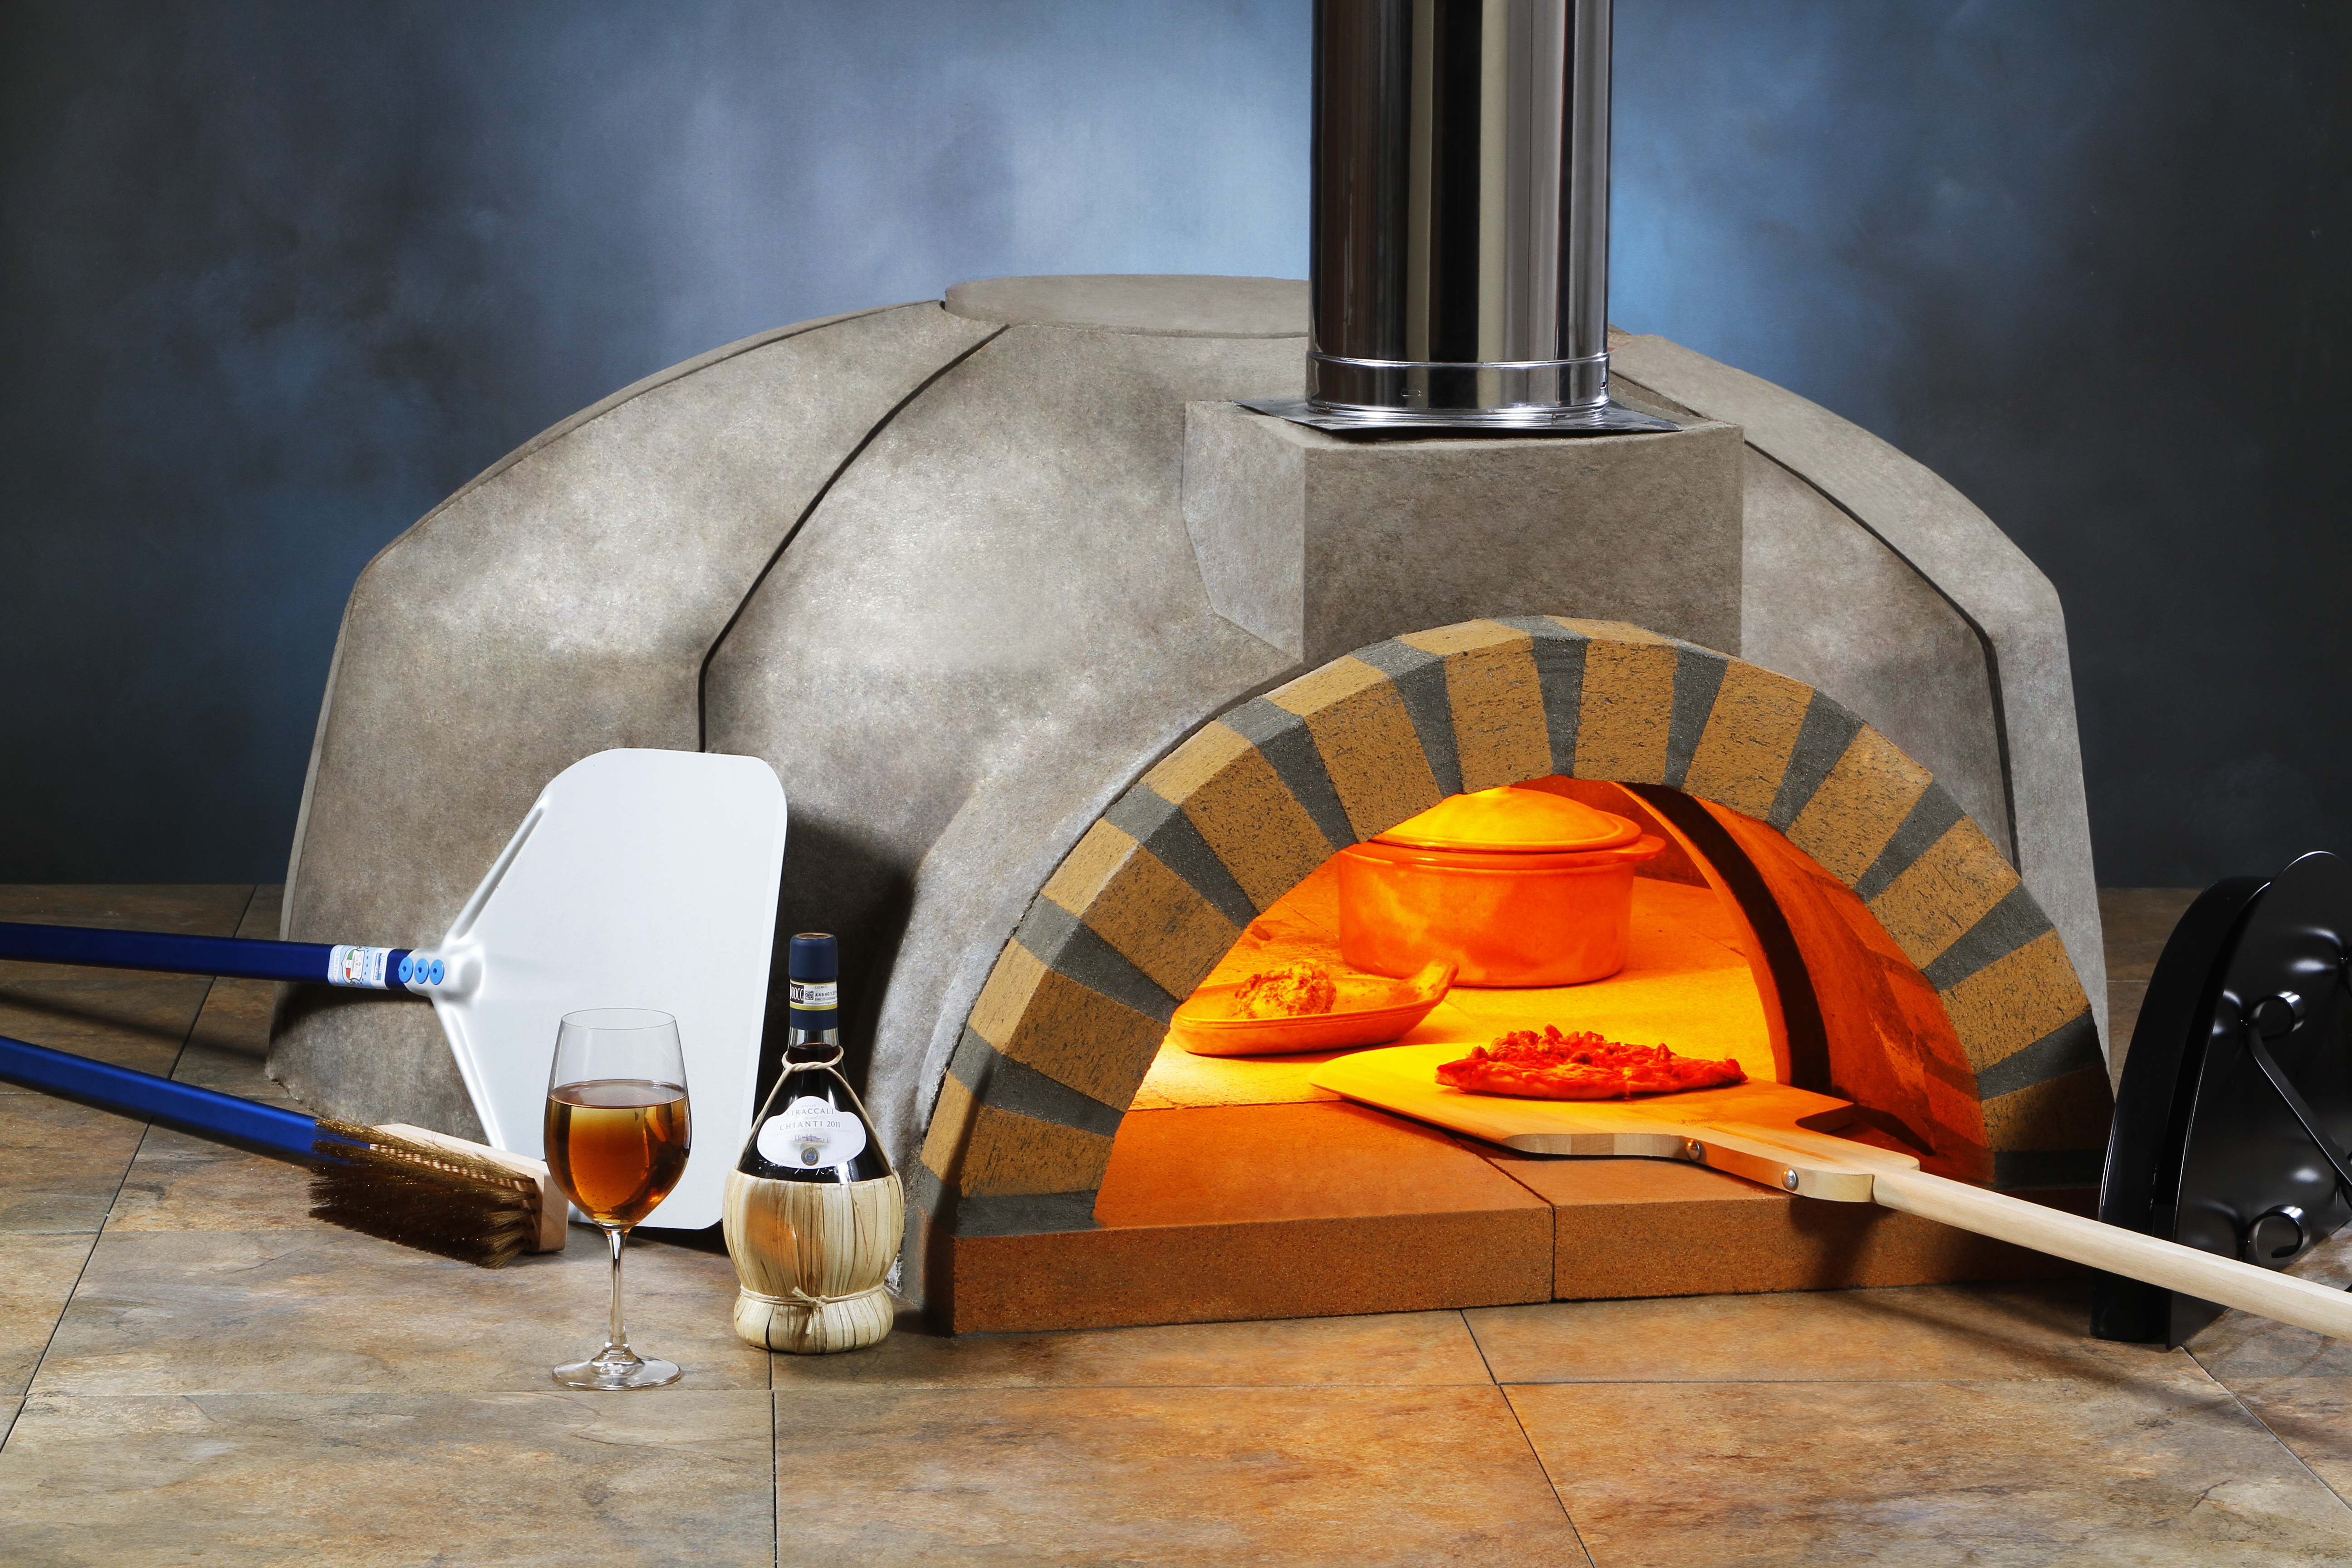 commercial wood gas fired pizza oven large. Black Bedroom Furniture Sets. Home Design Ideas